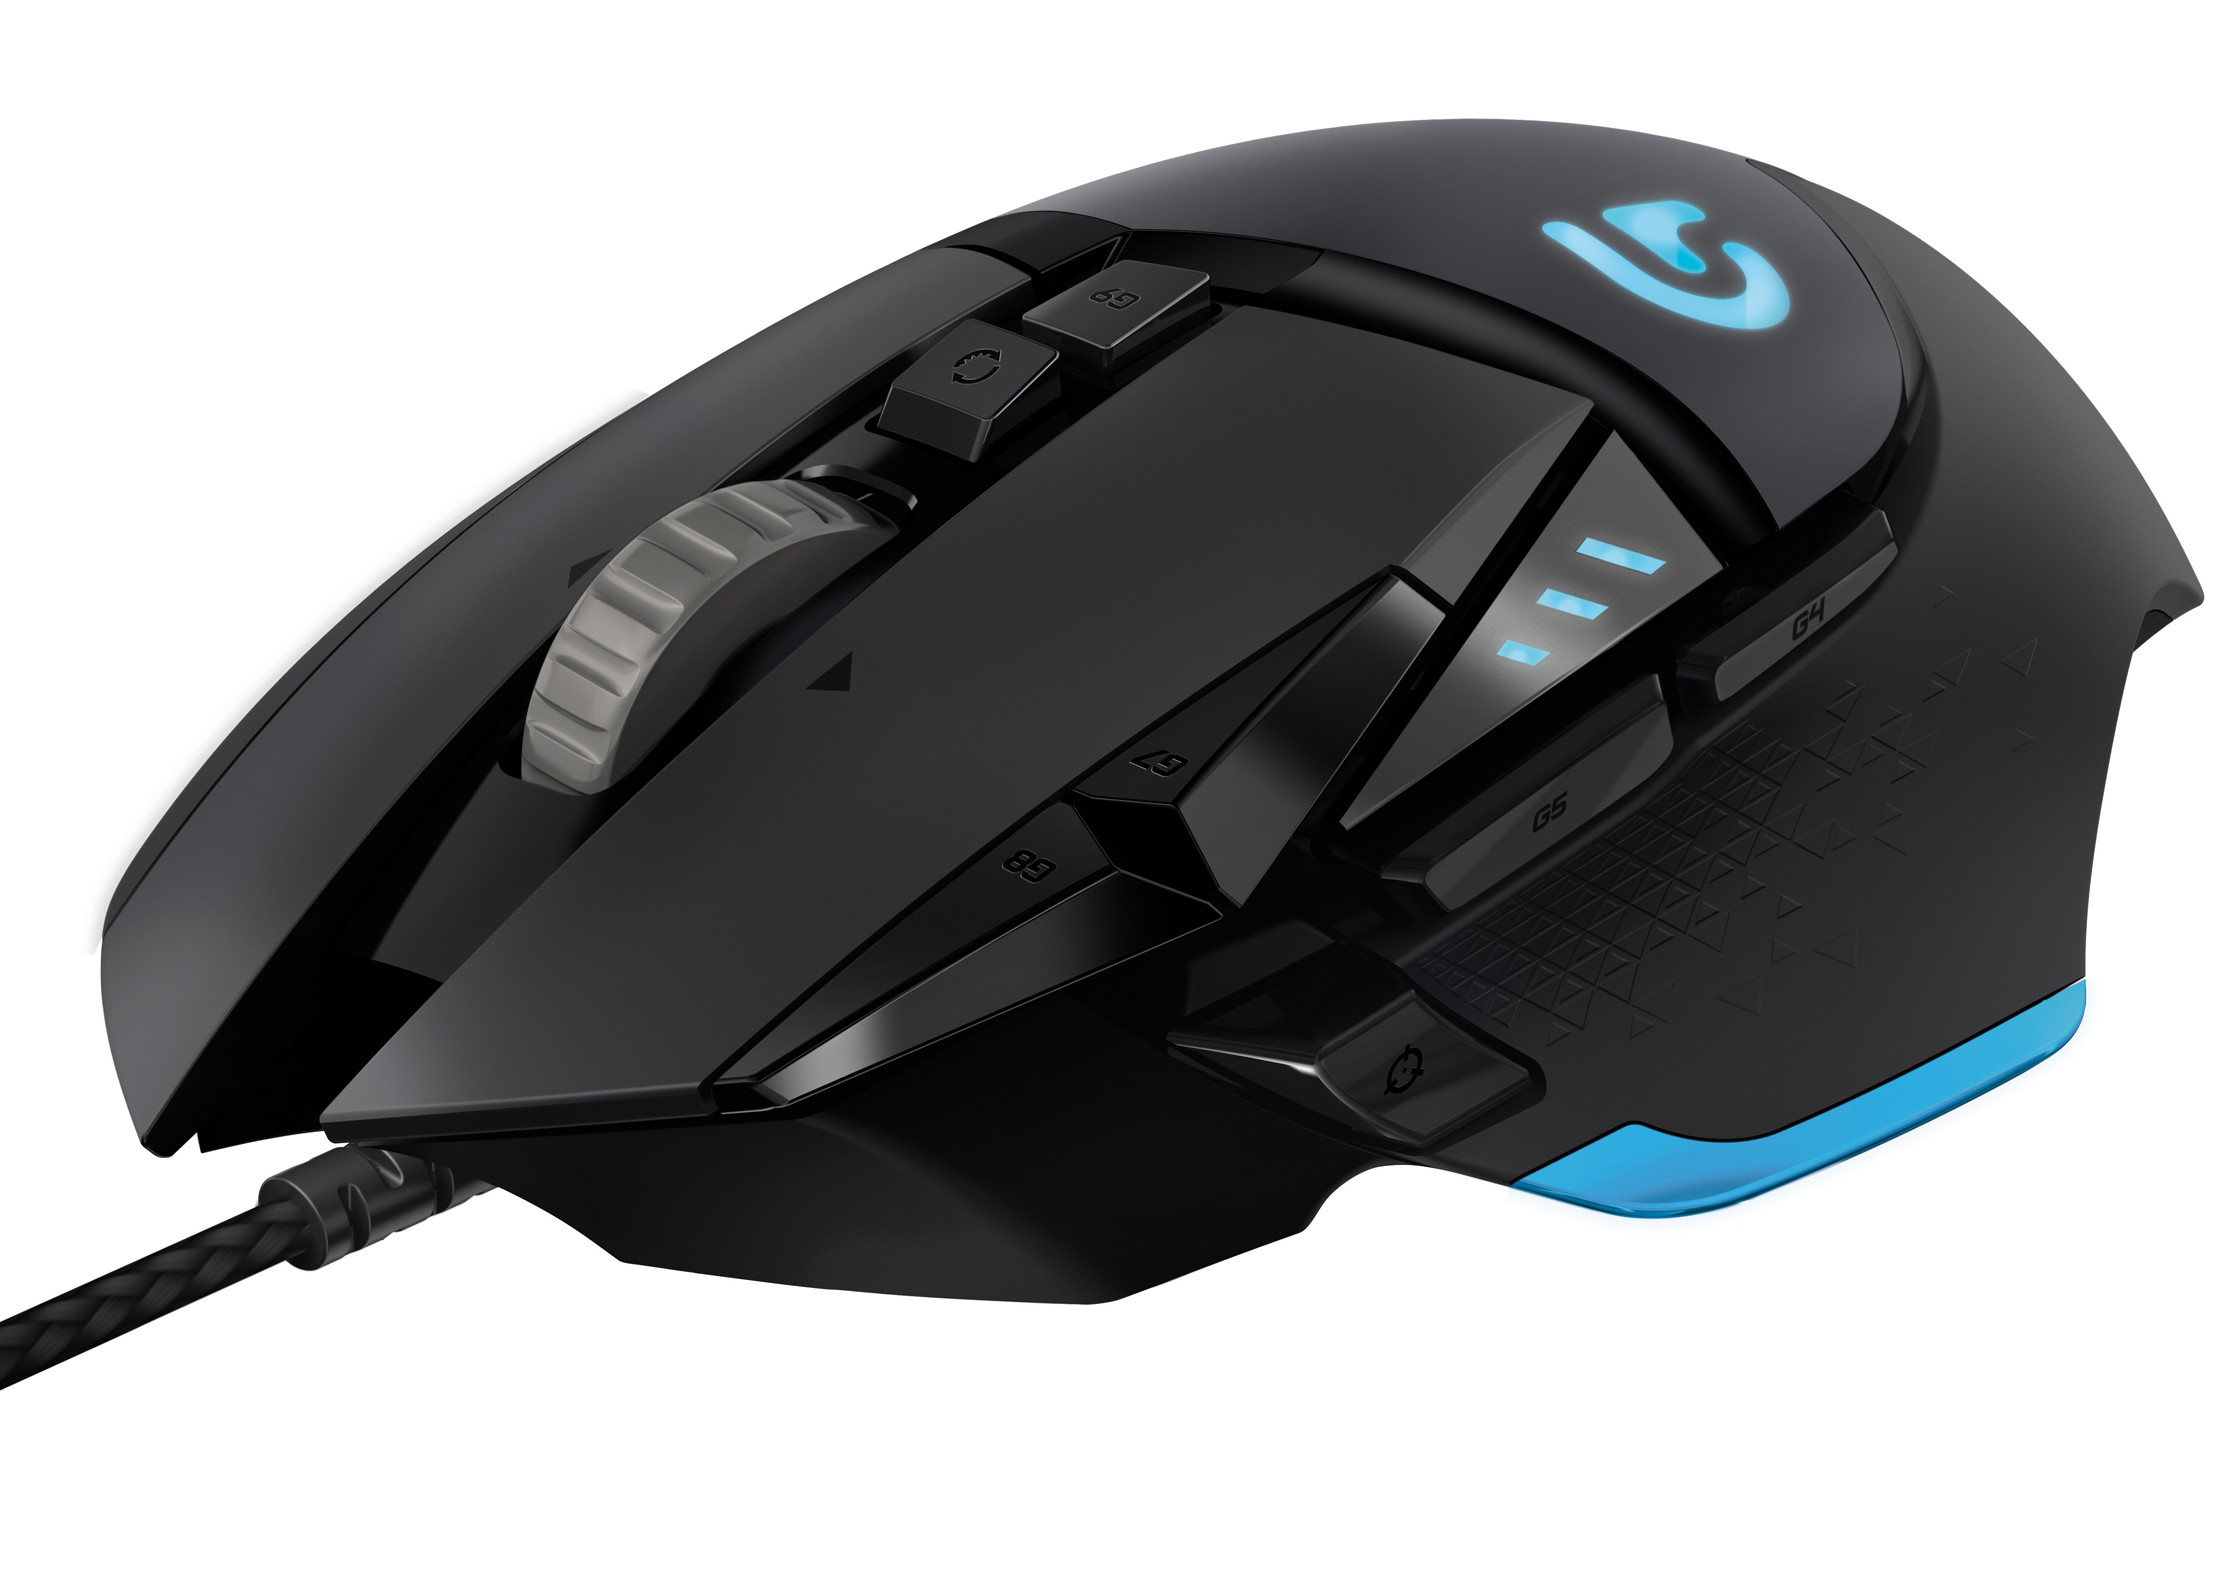 5bc35deae2b Logitech Launches First-of-Its-Kind Logitech G Tunable Gaming Mouse ...